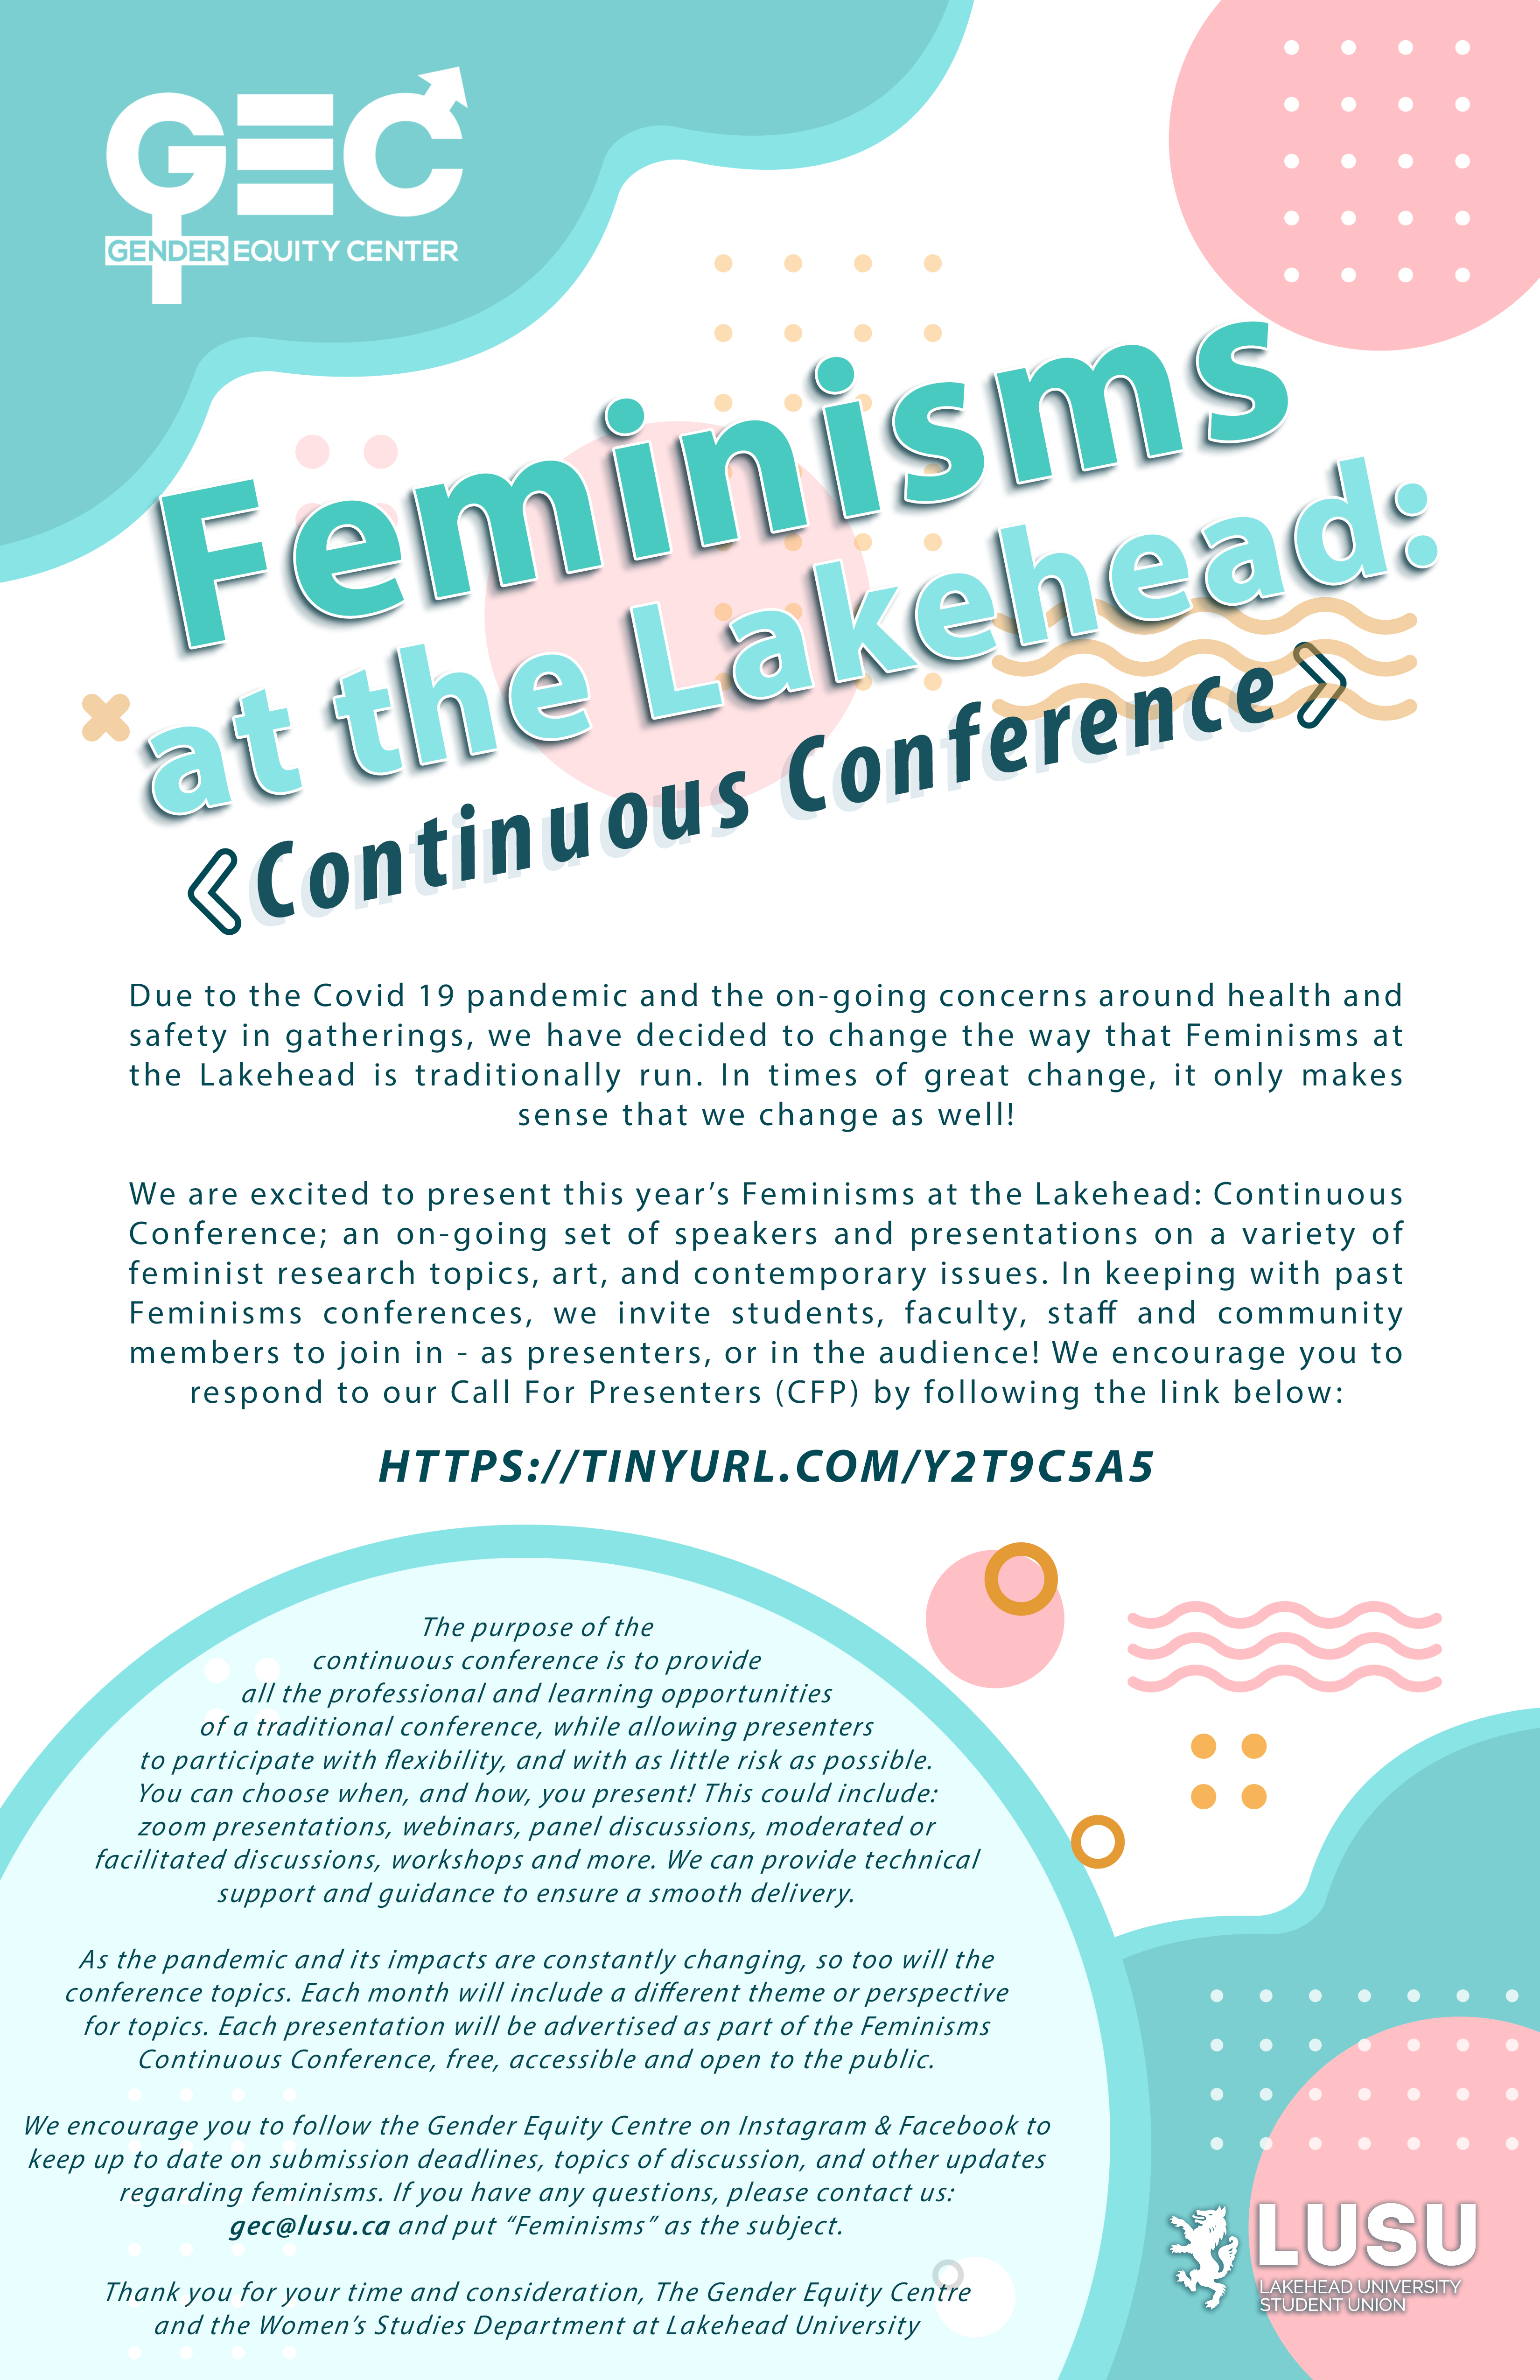 Please contact the Gender Equity Centre for alternative formating of this poster at gec@lusu.ca.